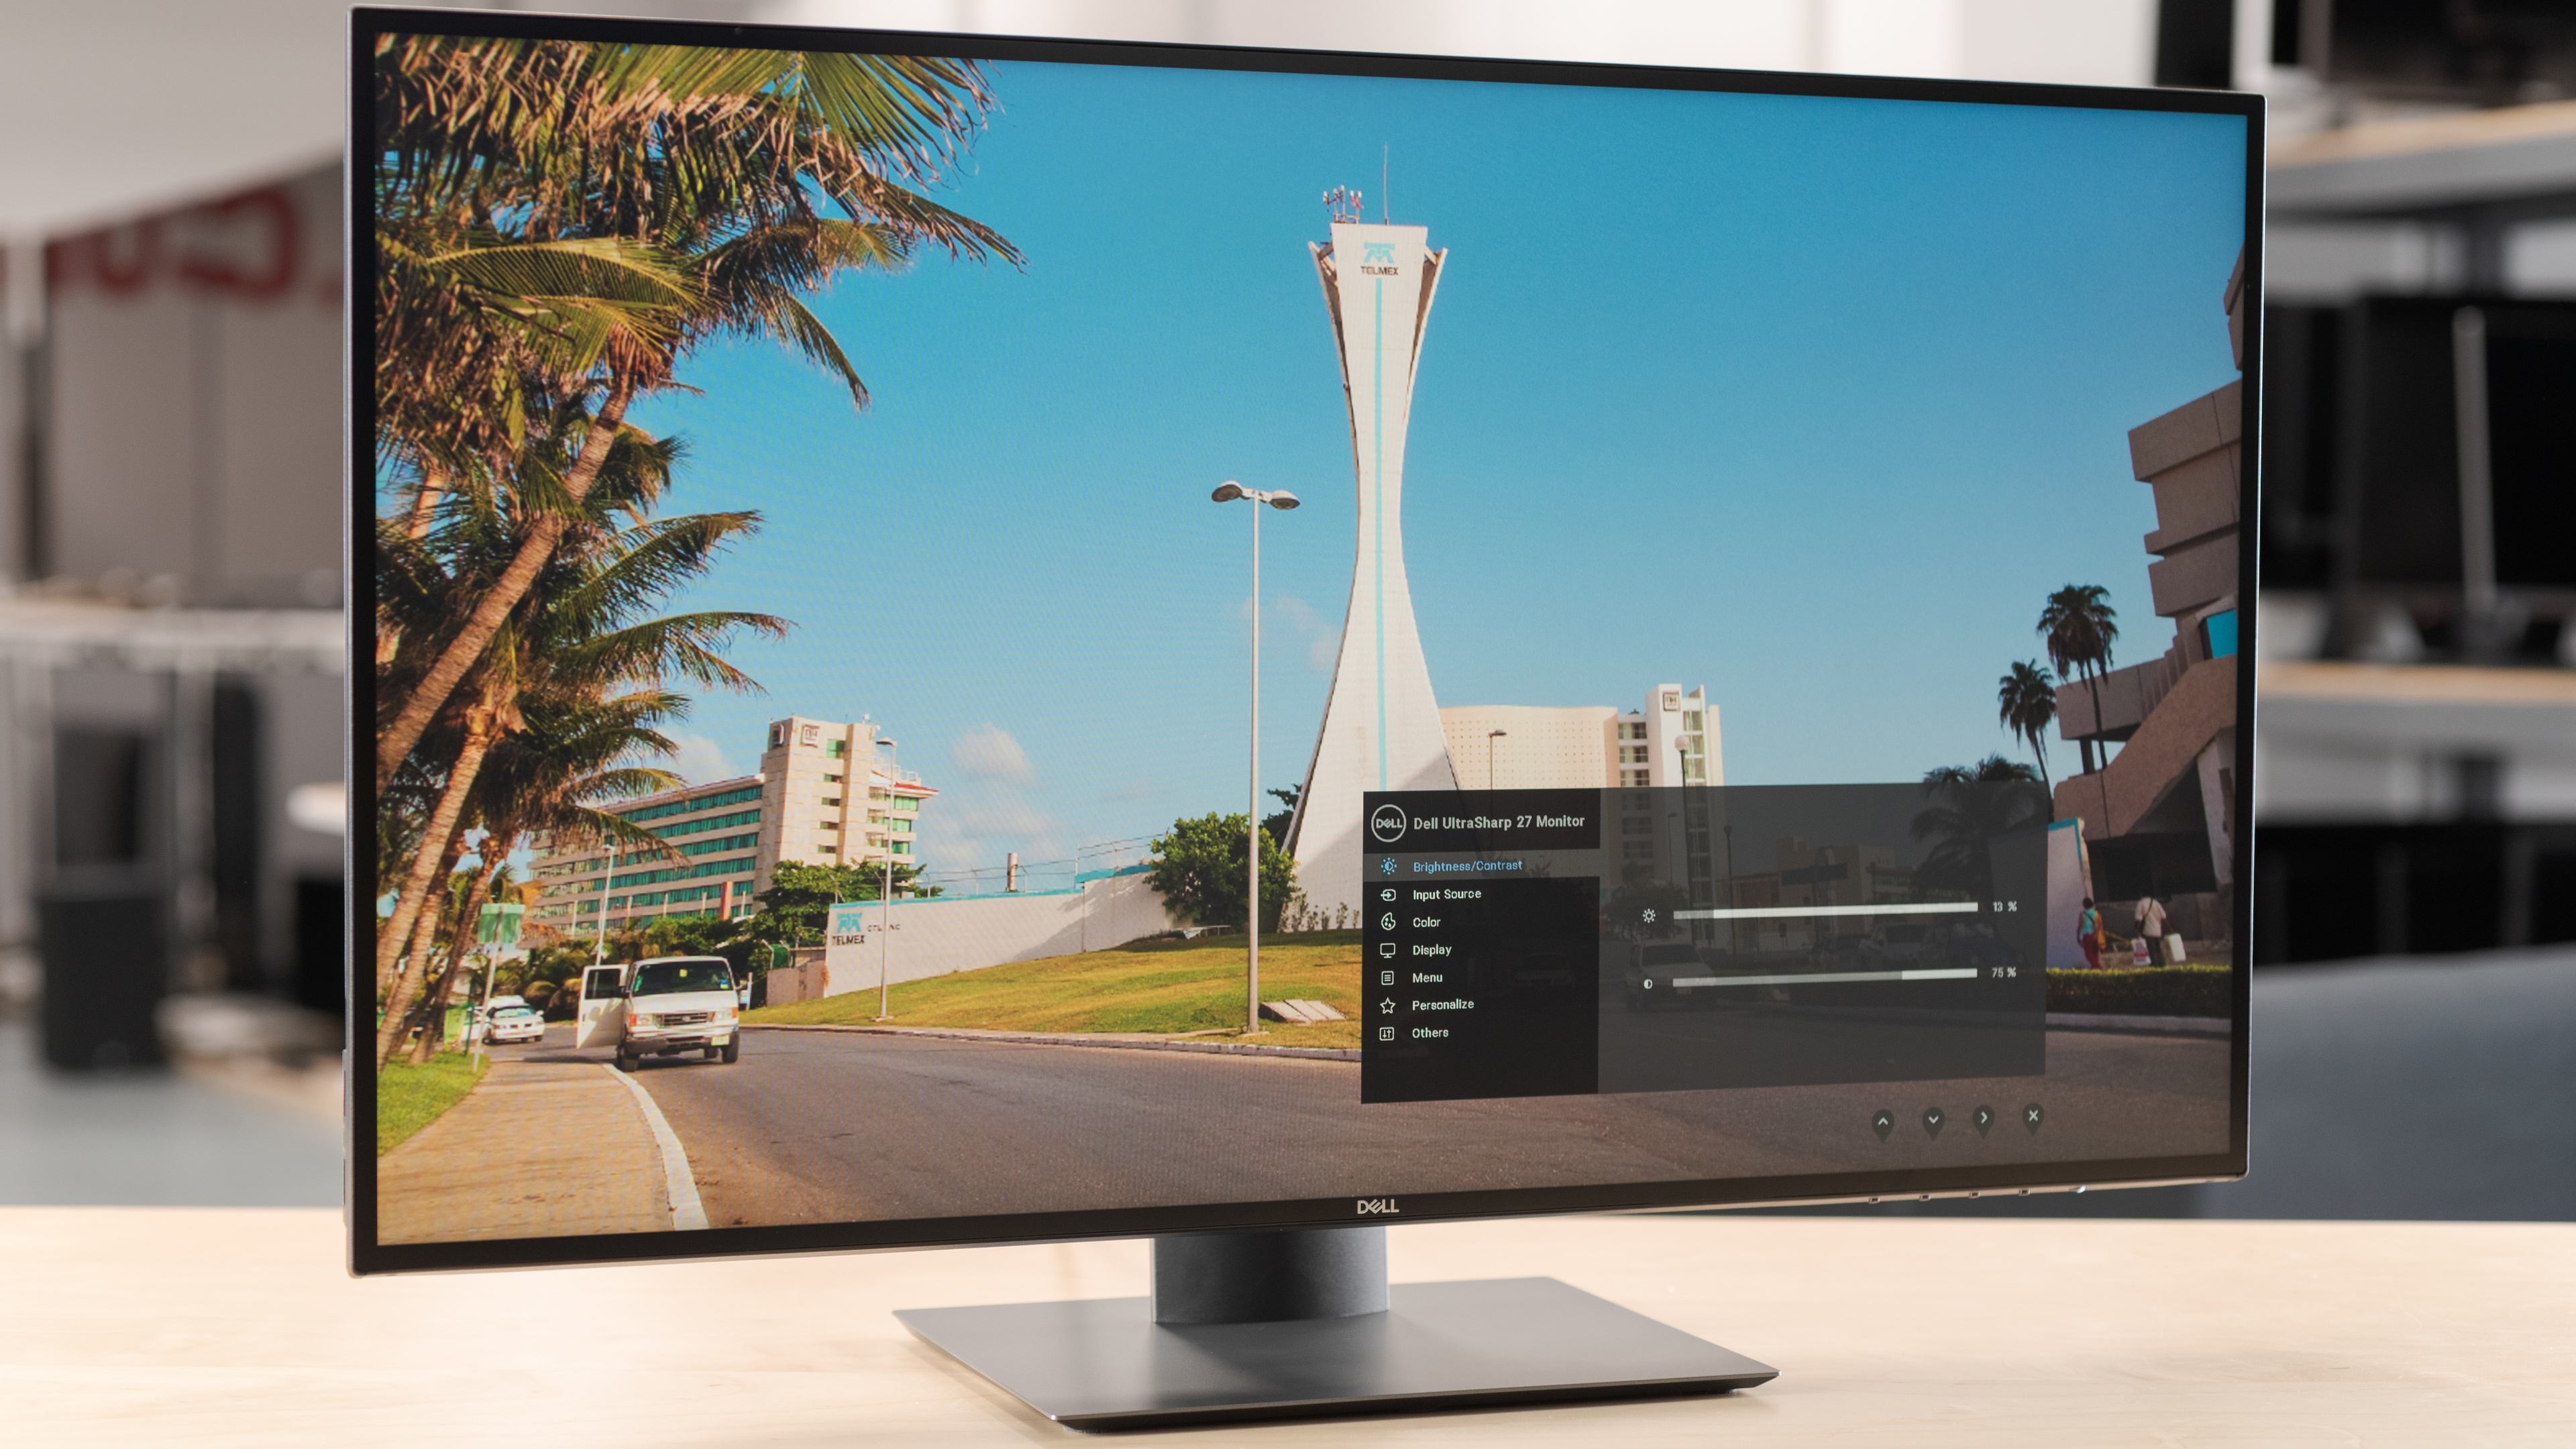 Dell U2719D Review - RTINGS com